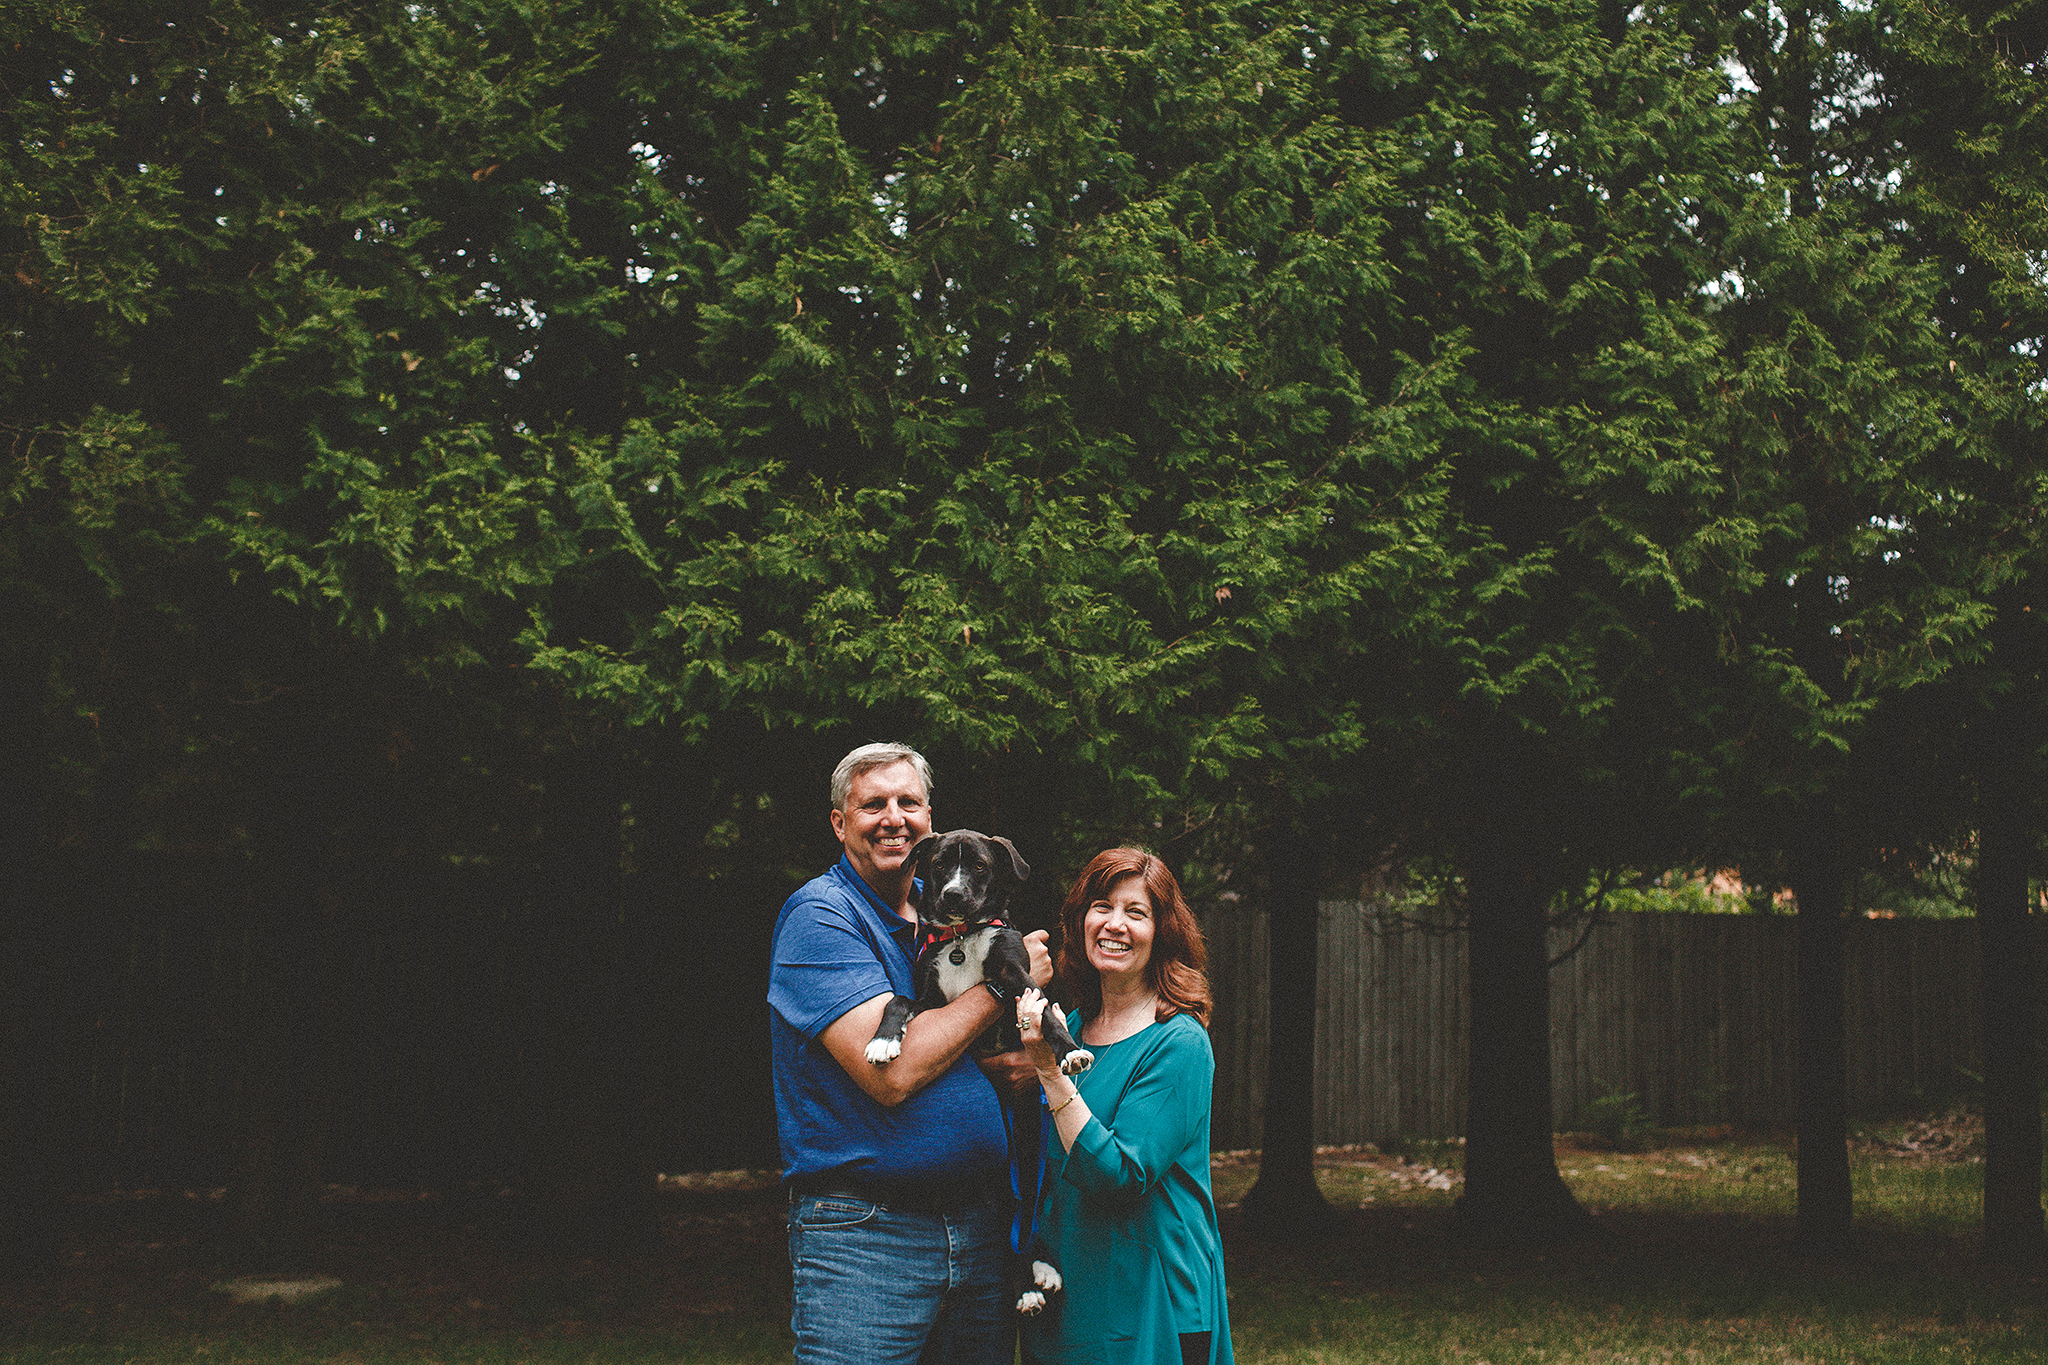 Mature couple holding dog in the forest | Sheboygan, WI photographer | Chrissy Deming photography